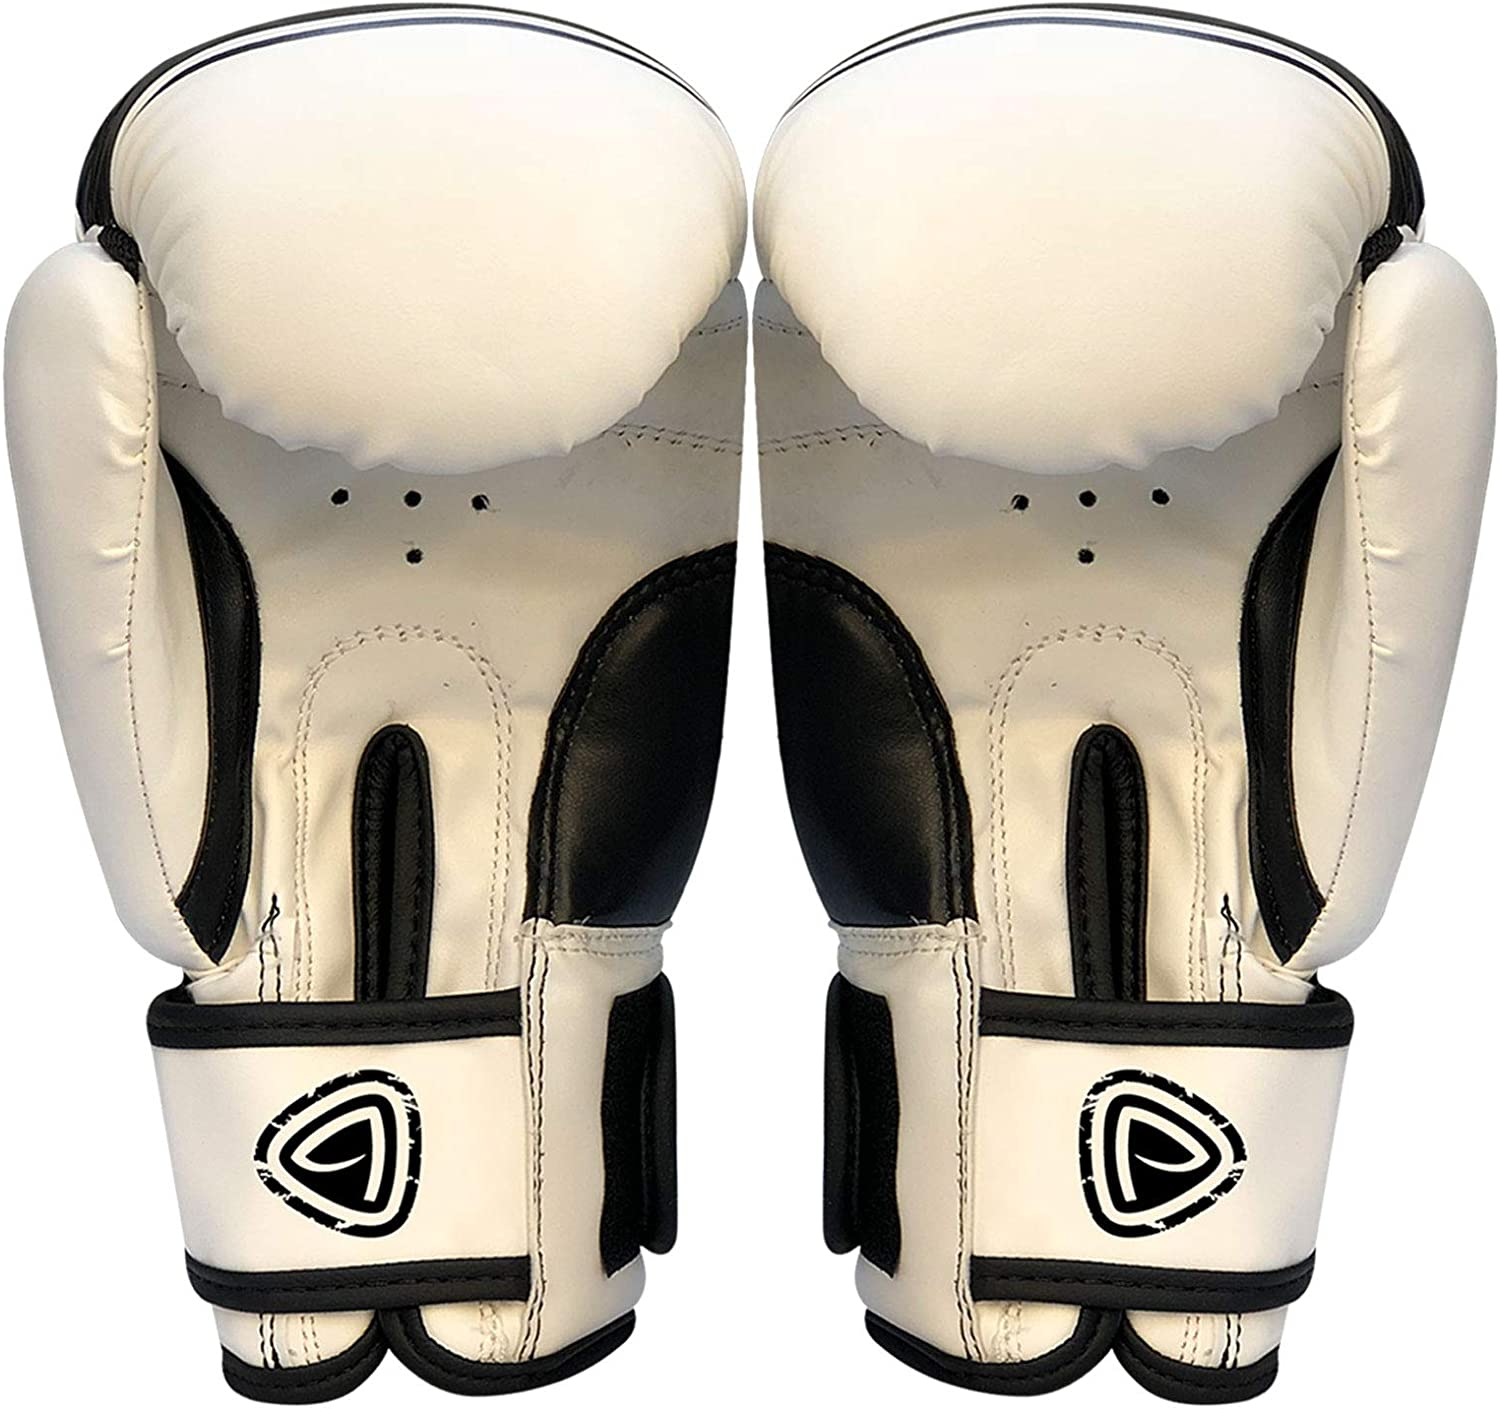 Junior Boxing Gloves With Kids School Gym Drawstring Bag Rex Leather MMA Mitts